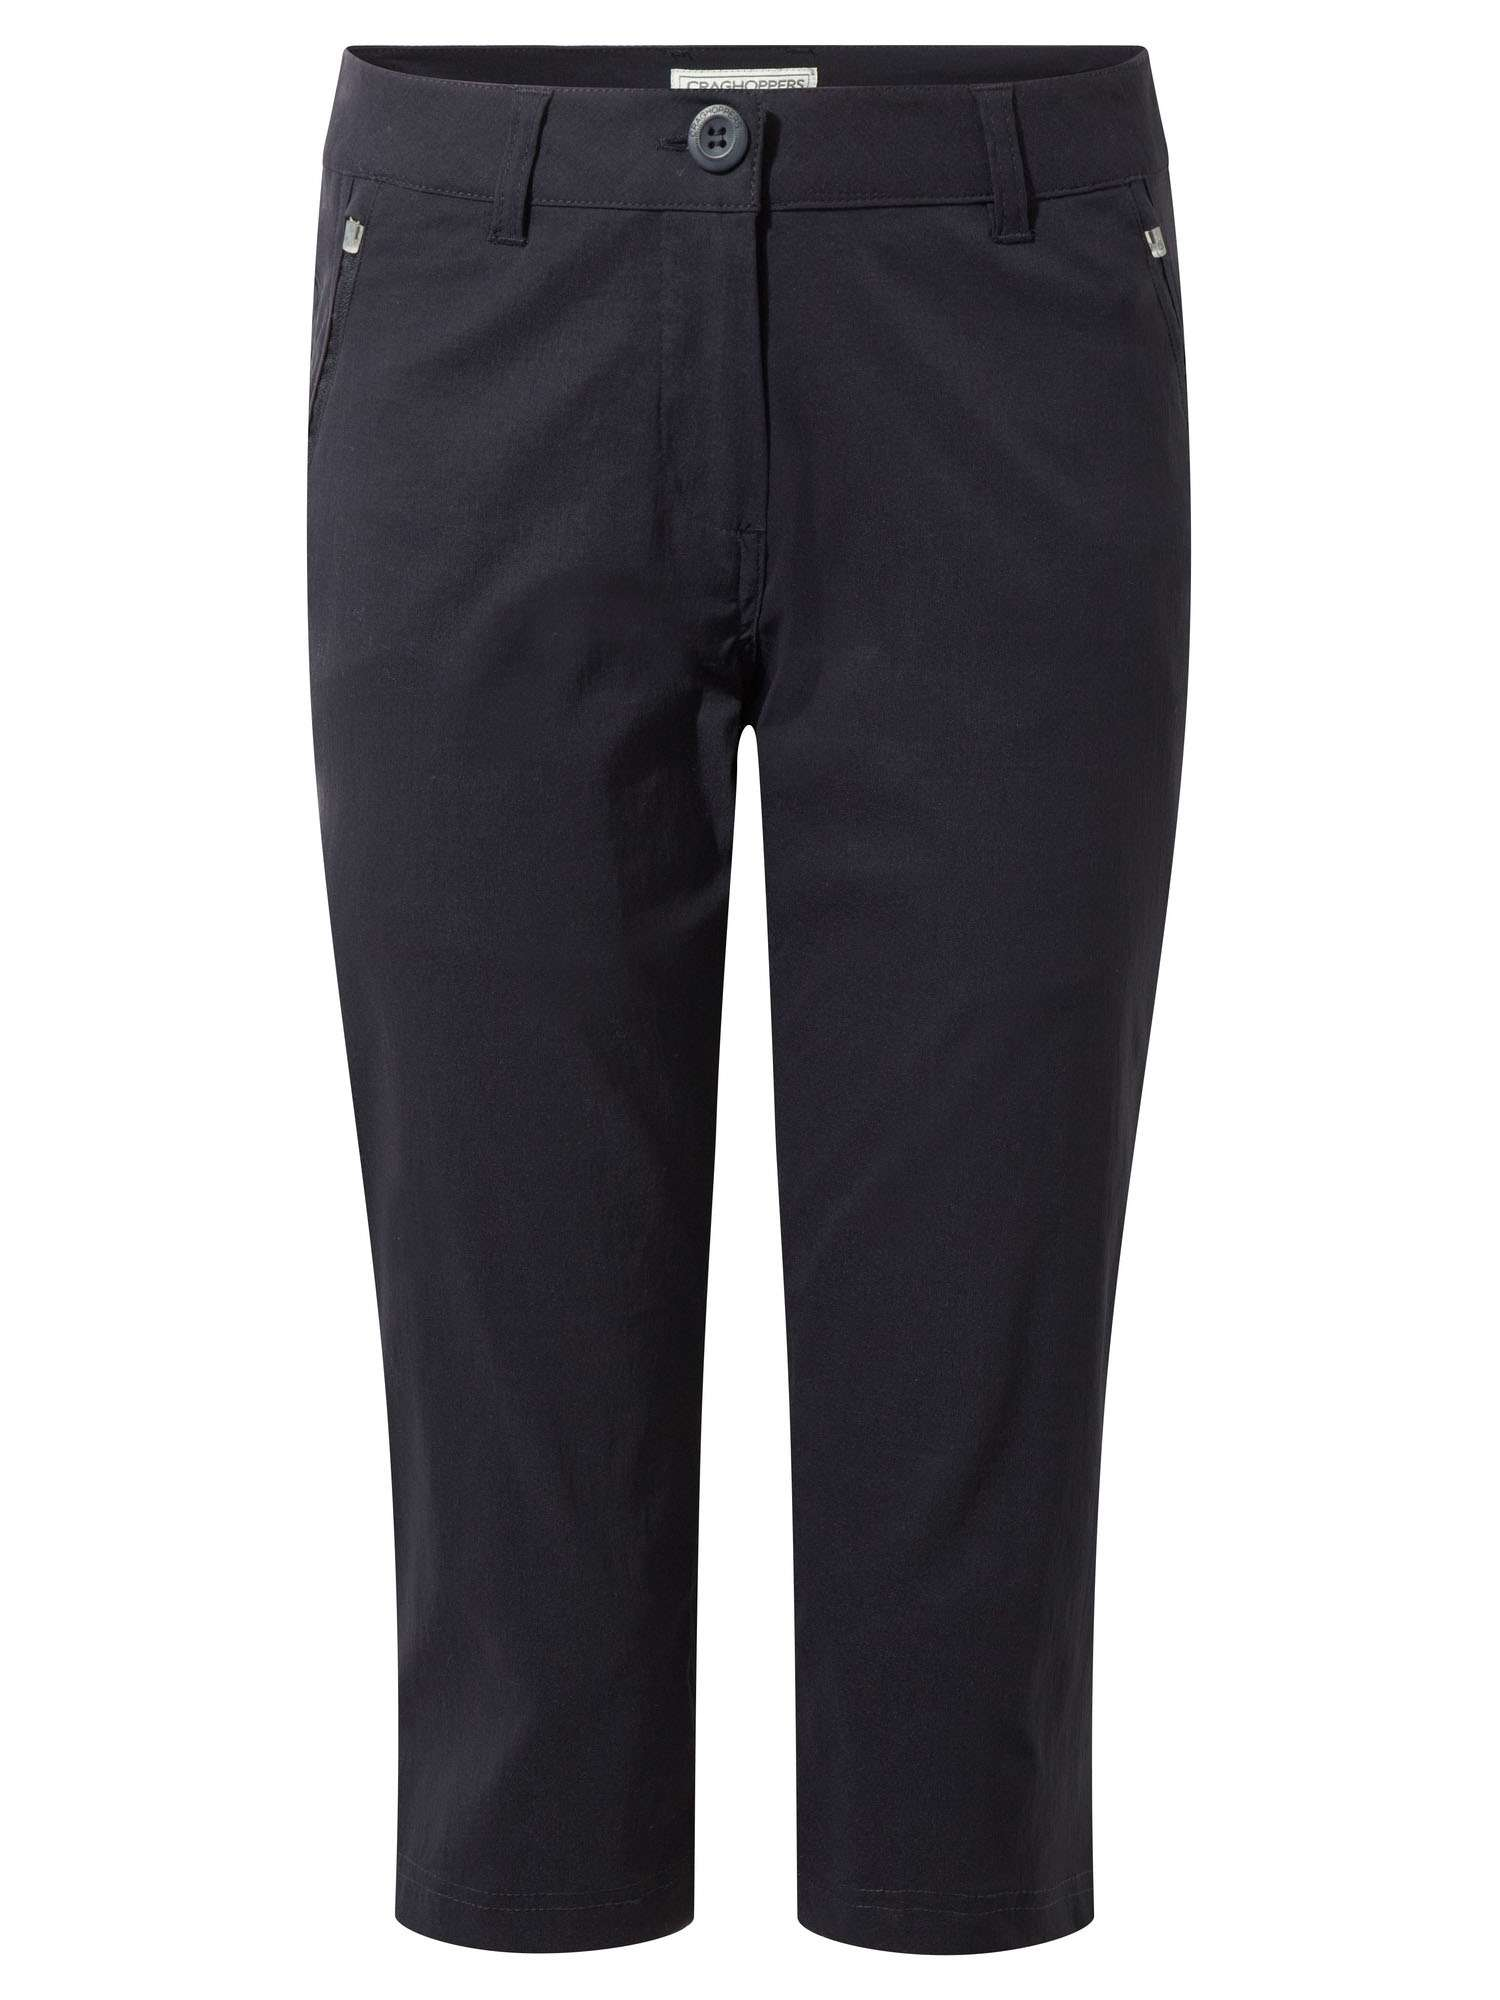 Craghoppers Trousers Stretch Pro Kiwi Crop Iqr0Iw